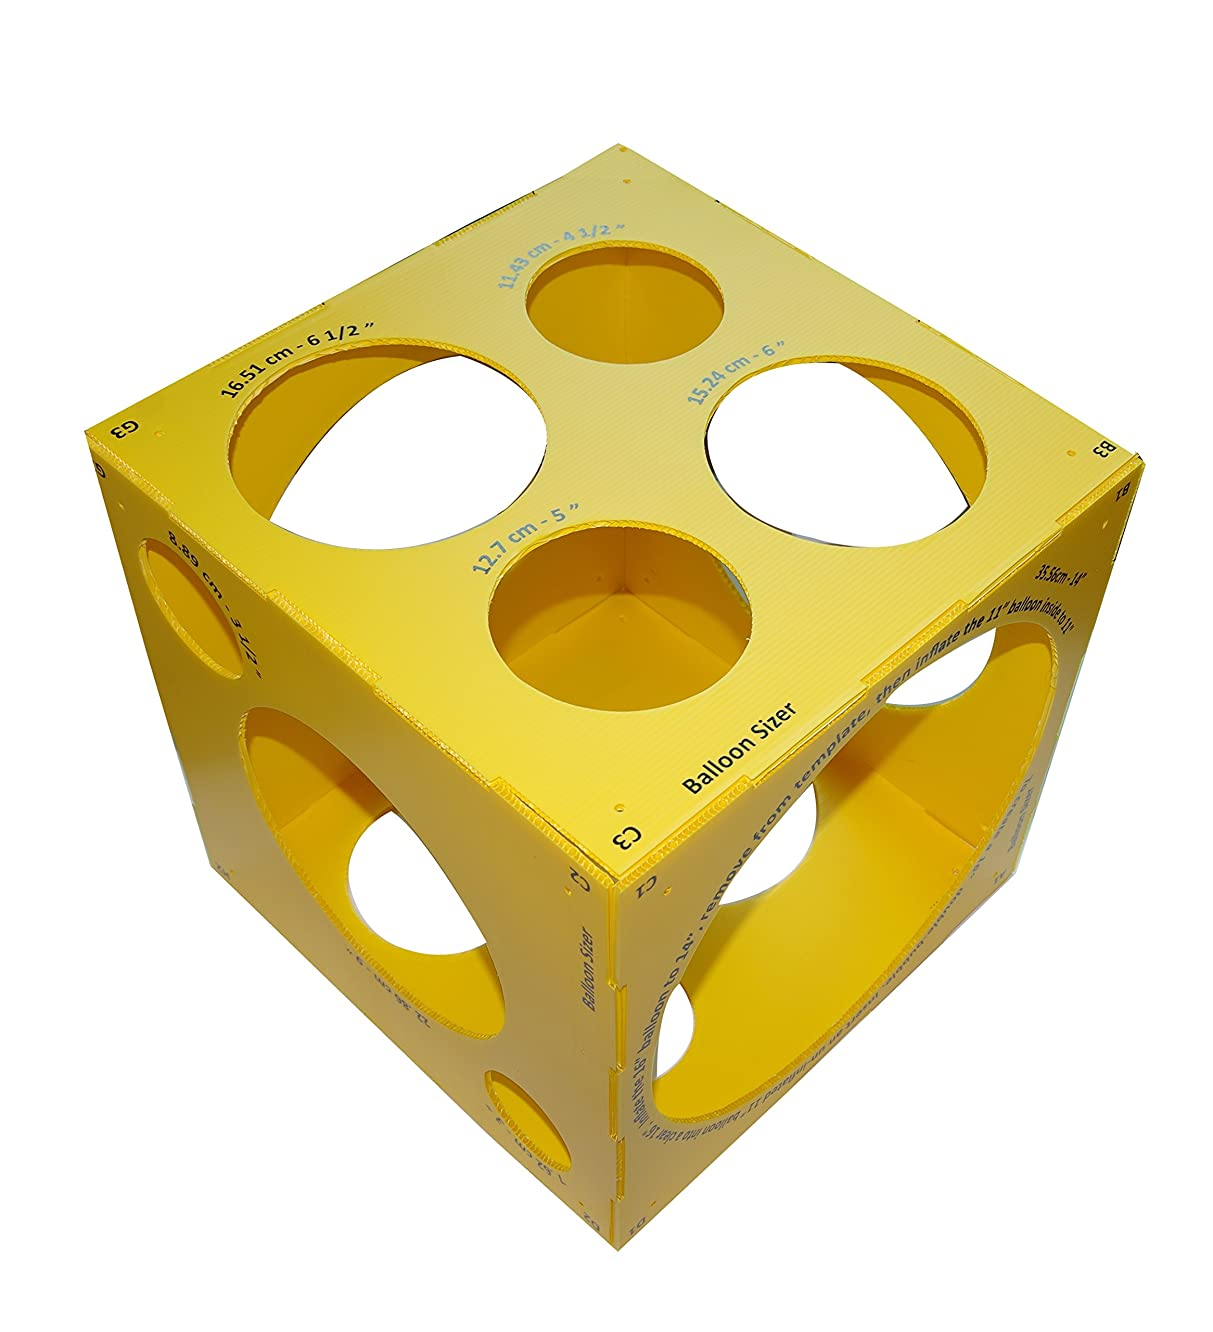 13 Holes Collapsible Plastic Cube Balloon Sizer Box From 3